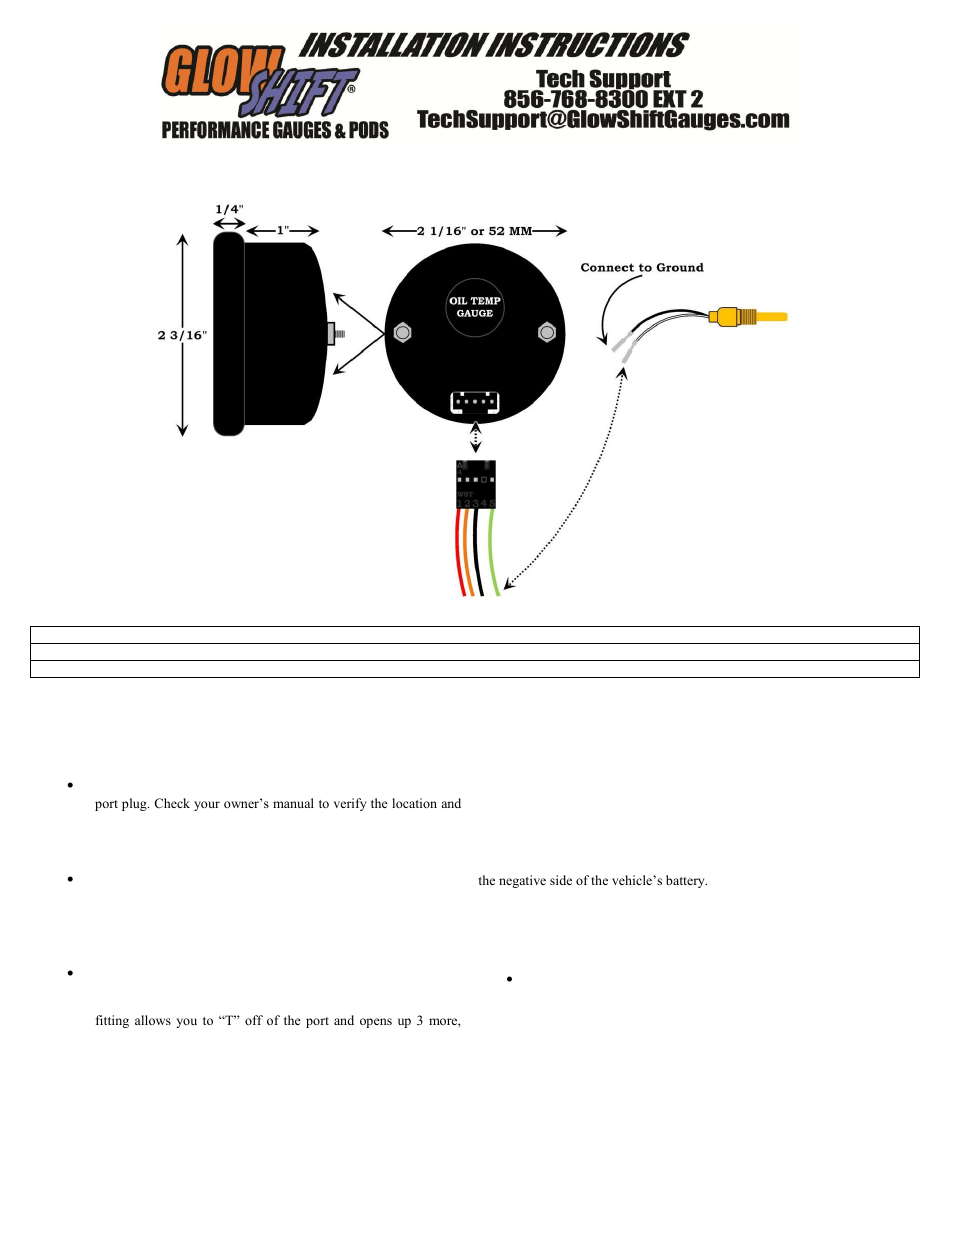 glowshift digital series celsius oil temperature gauge user manual